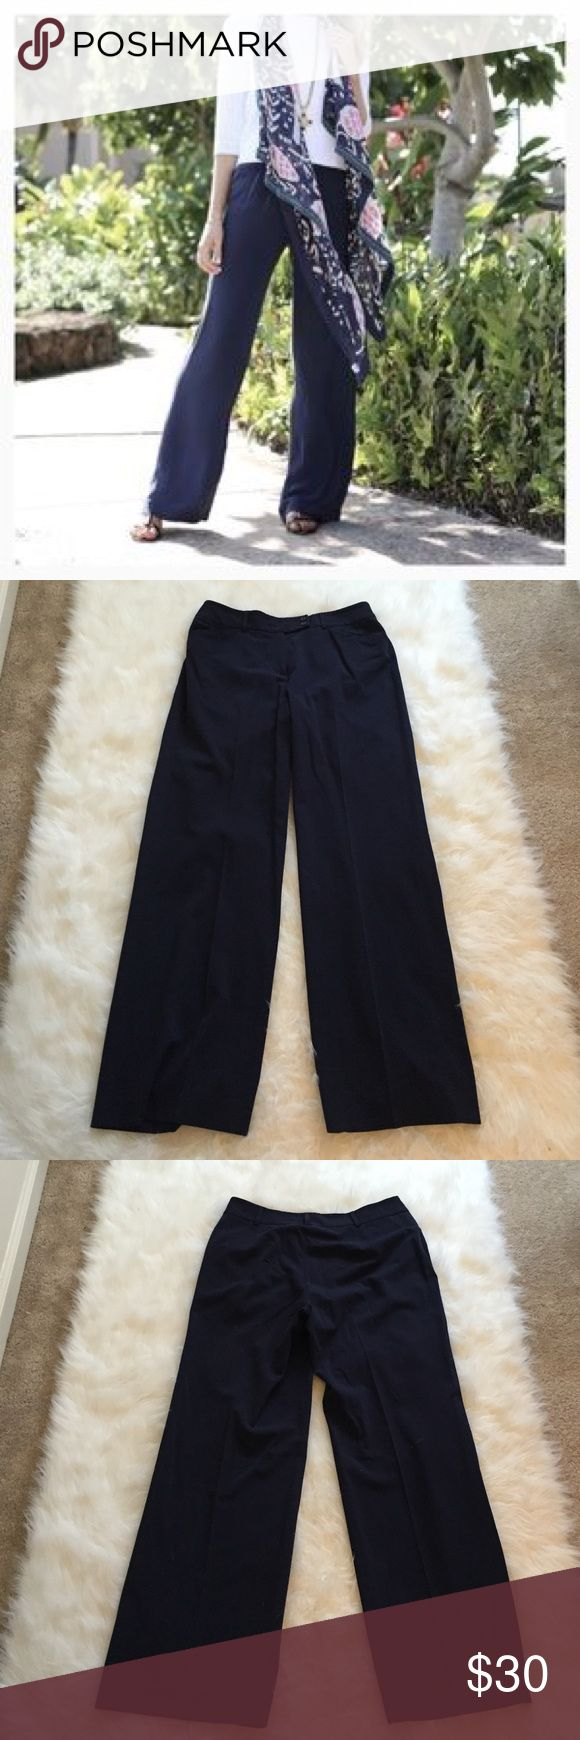 AK Dress Pants Like new navy blue wide leg dress pants. Super soft and comfortable. They make you look longer and leaner! No flaws. Anne Klein Pants